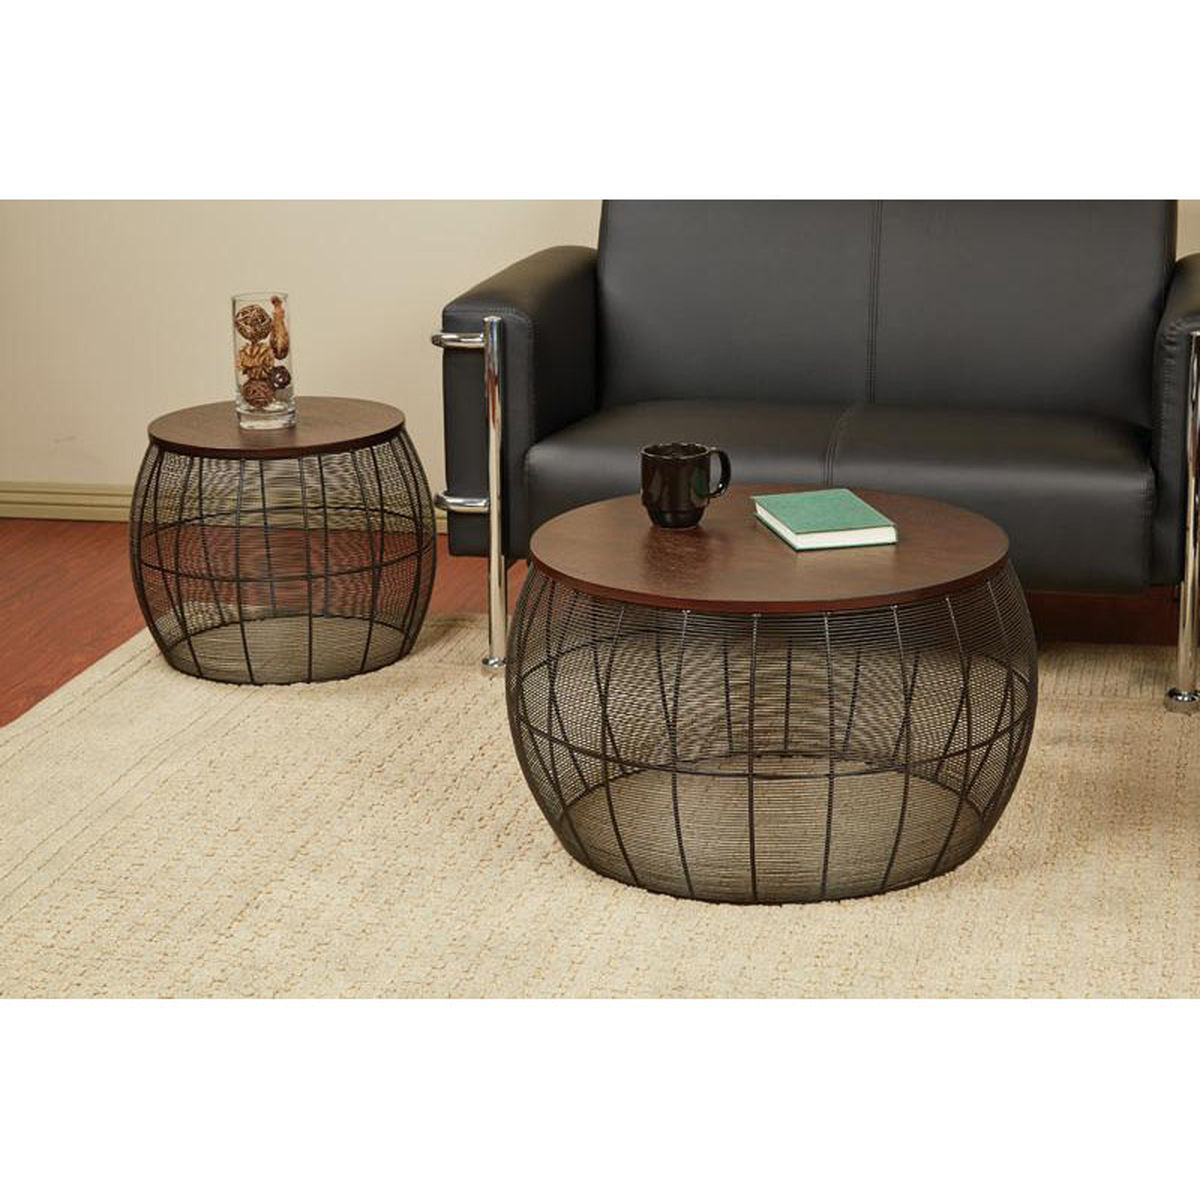 camden piece round accent tables bizchair office star products espresso table our osp designs metal with wood top cordless lamps shade bedroom furniture packages fargo hairpin